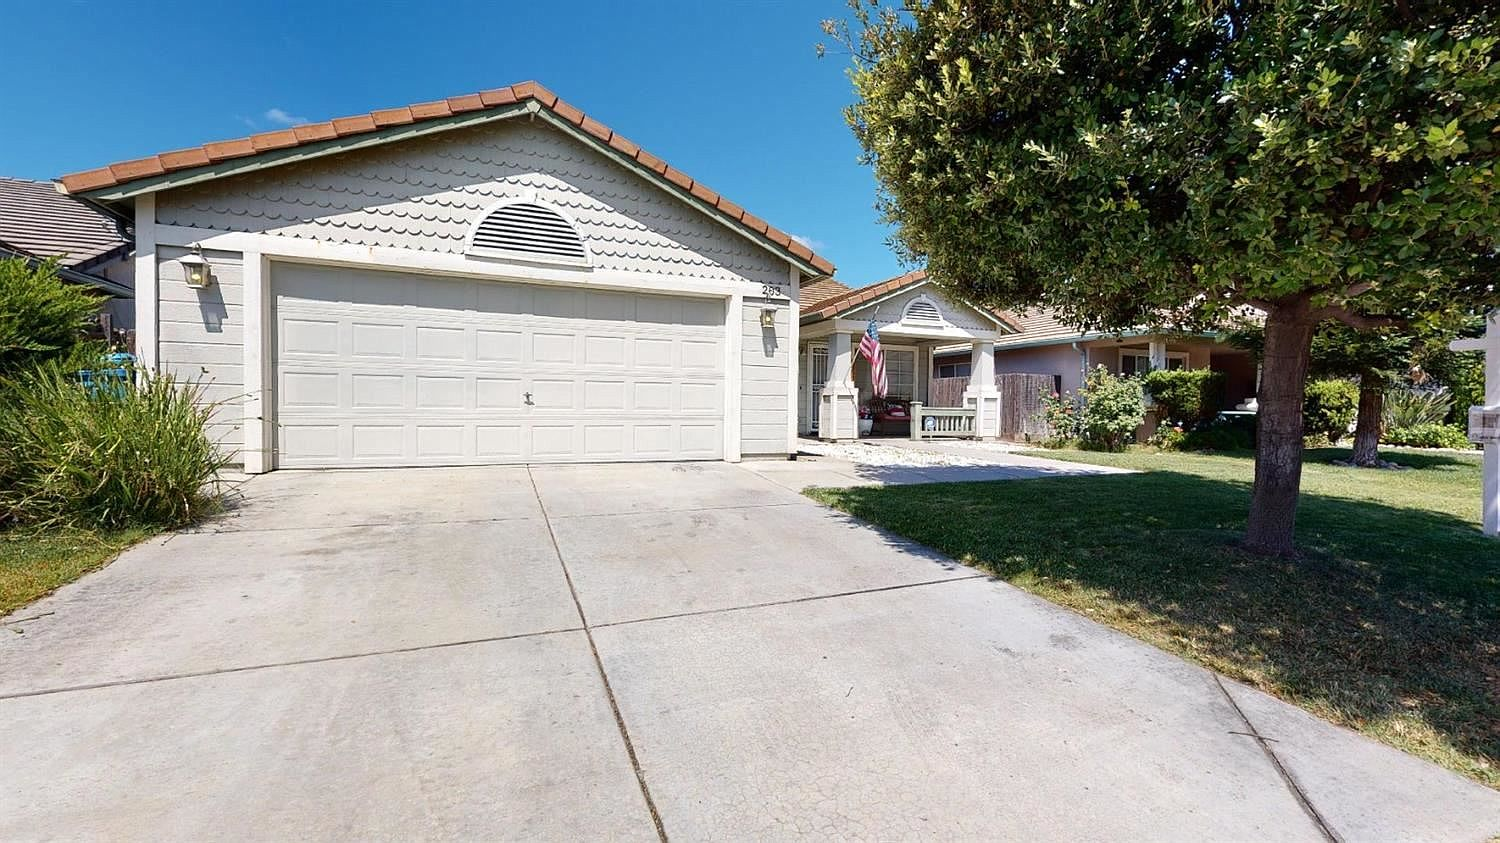 203 Dyer Ave Manteca Ca 95336 Zillow